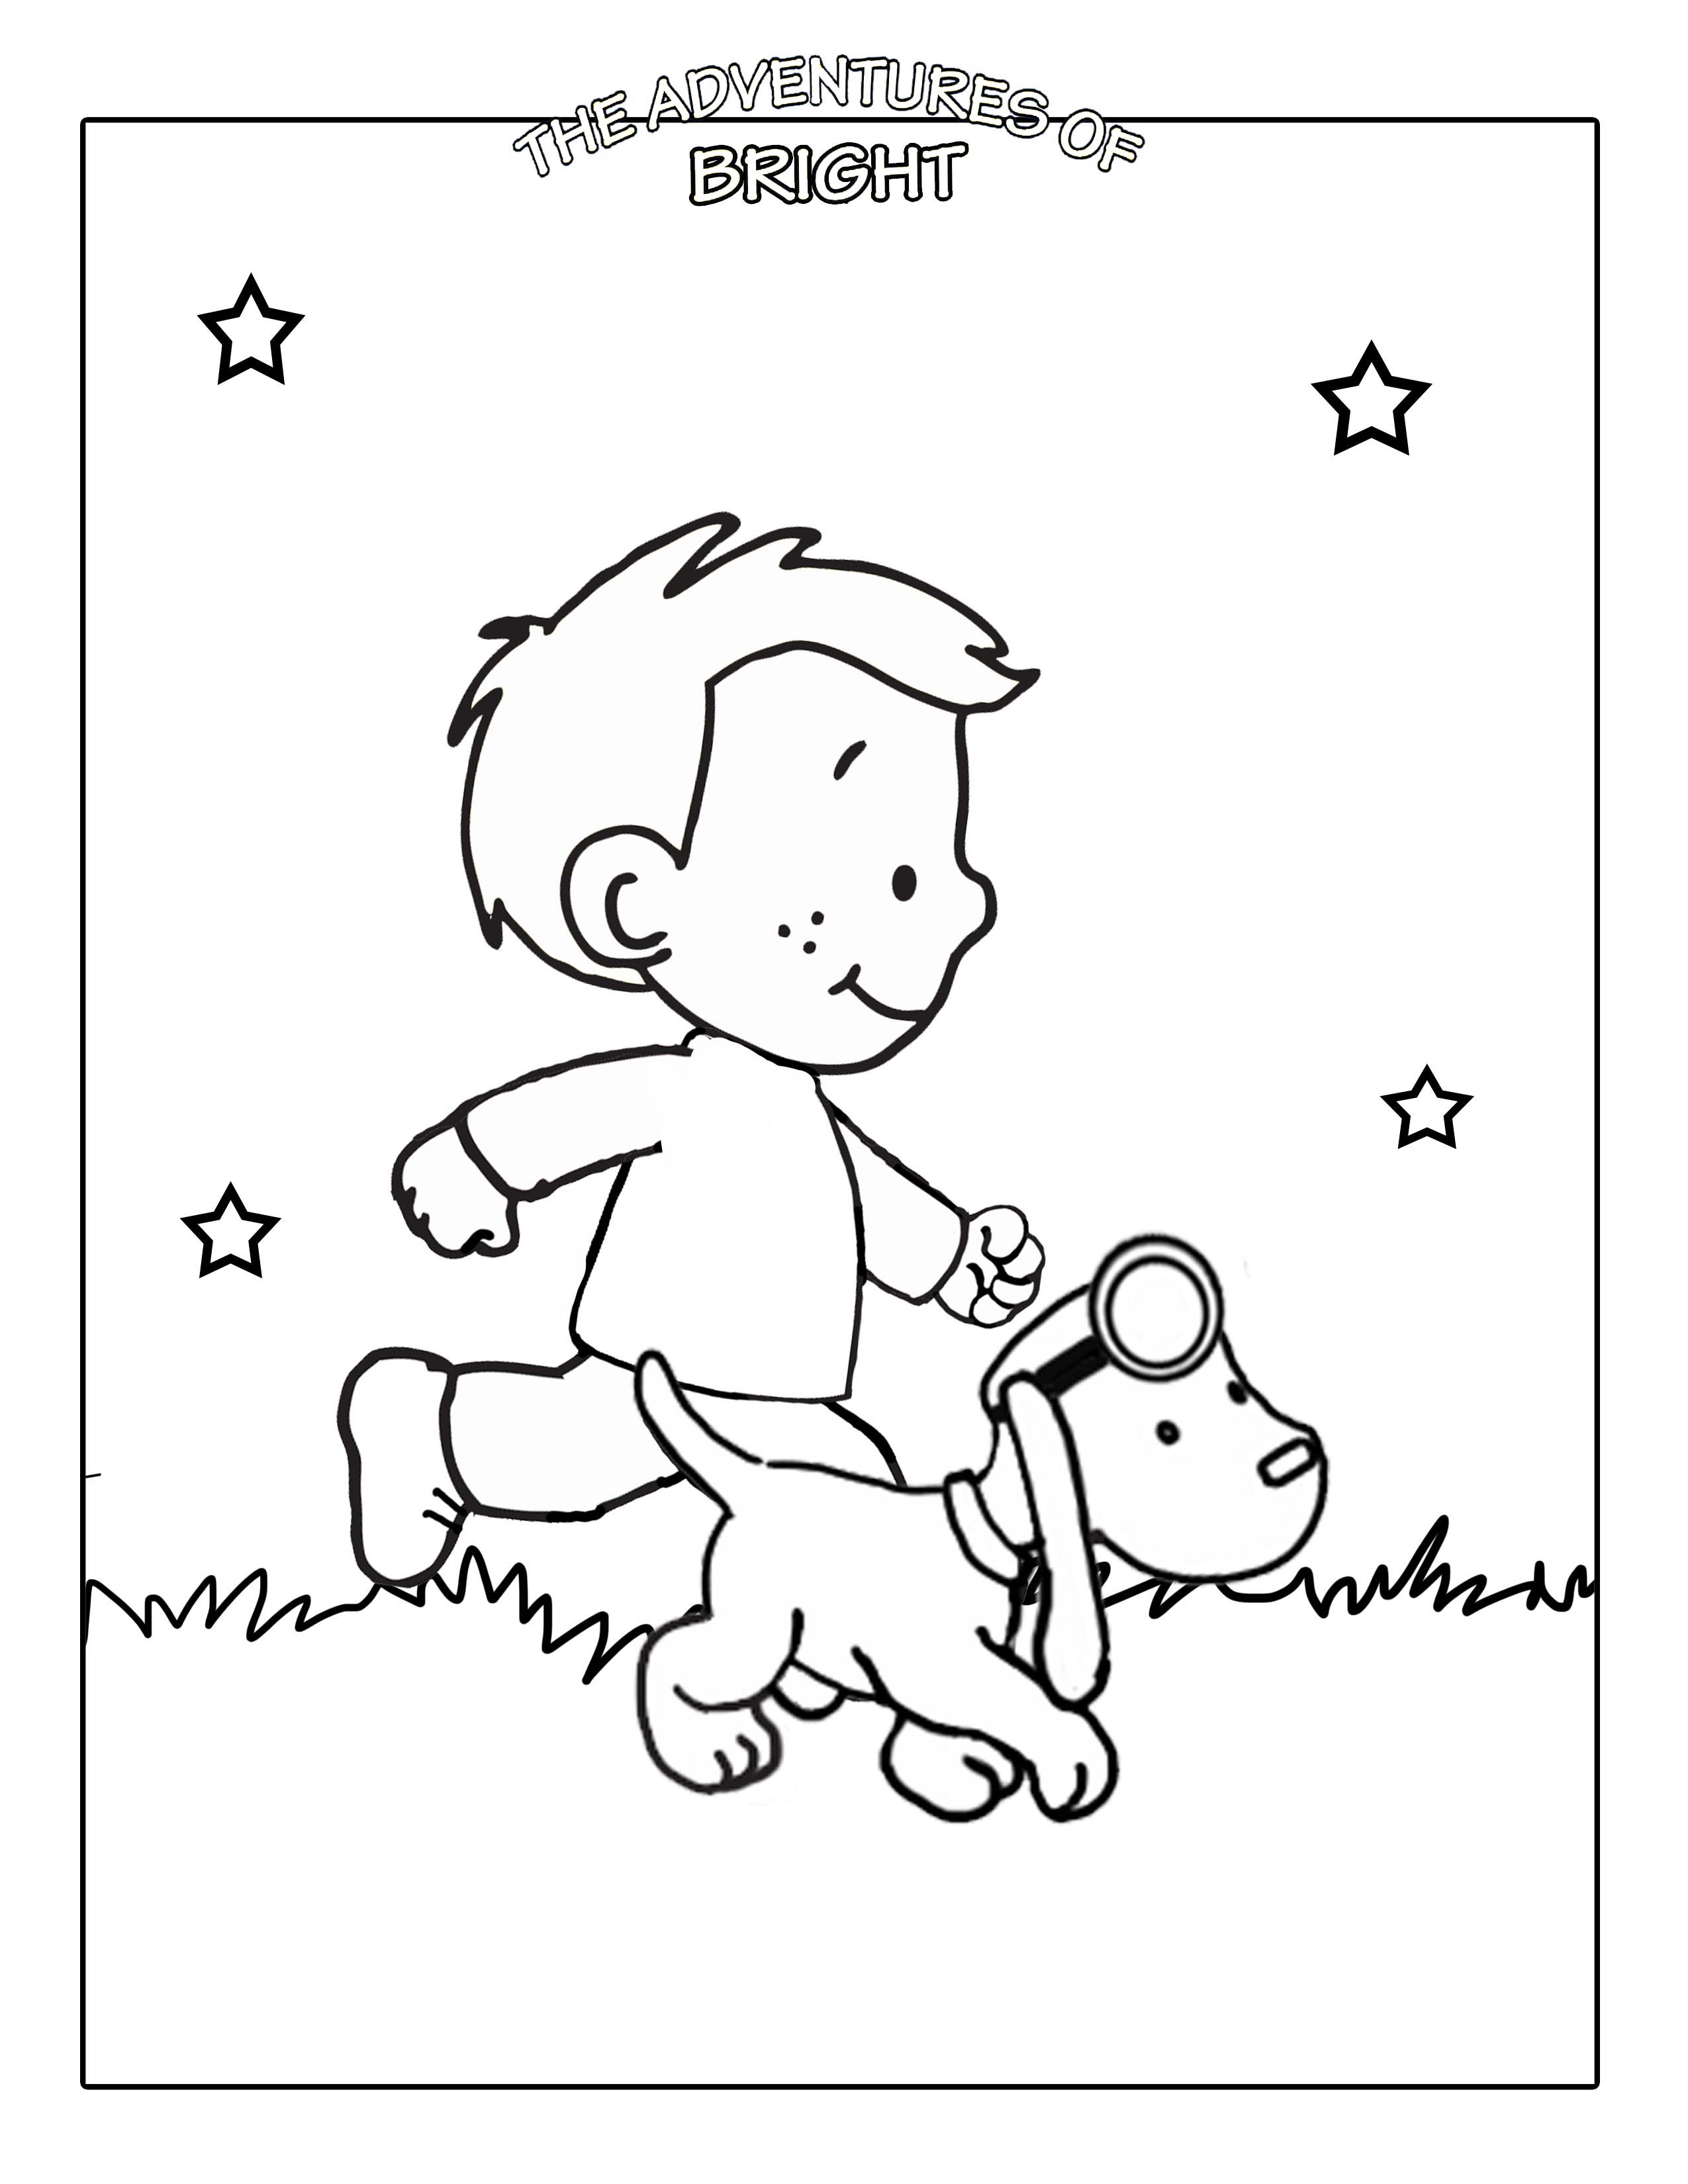 coloring page 3.jpg